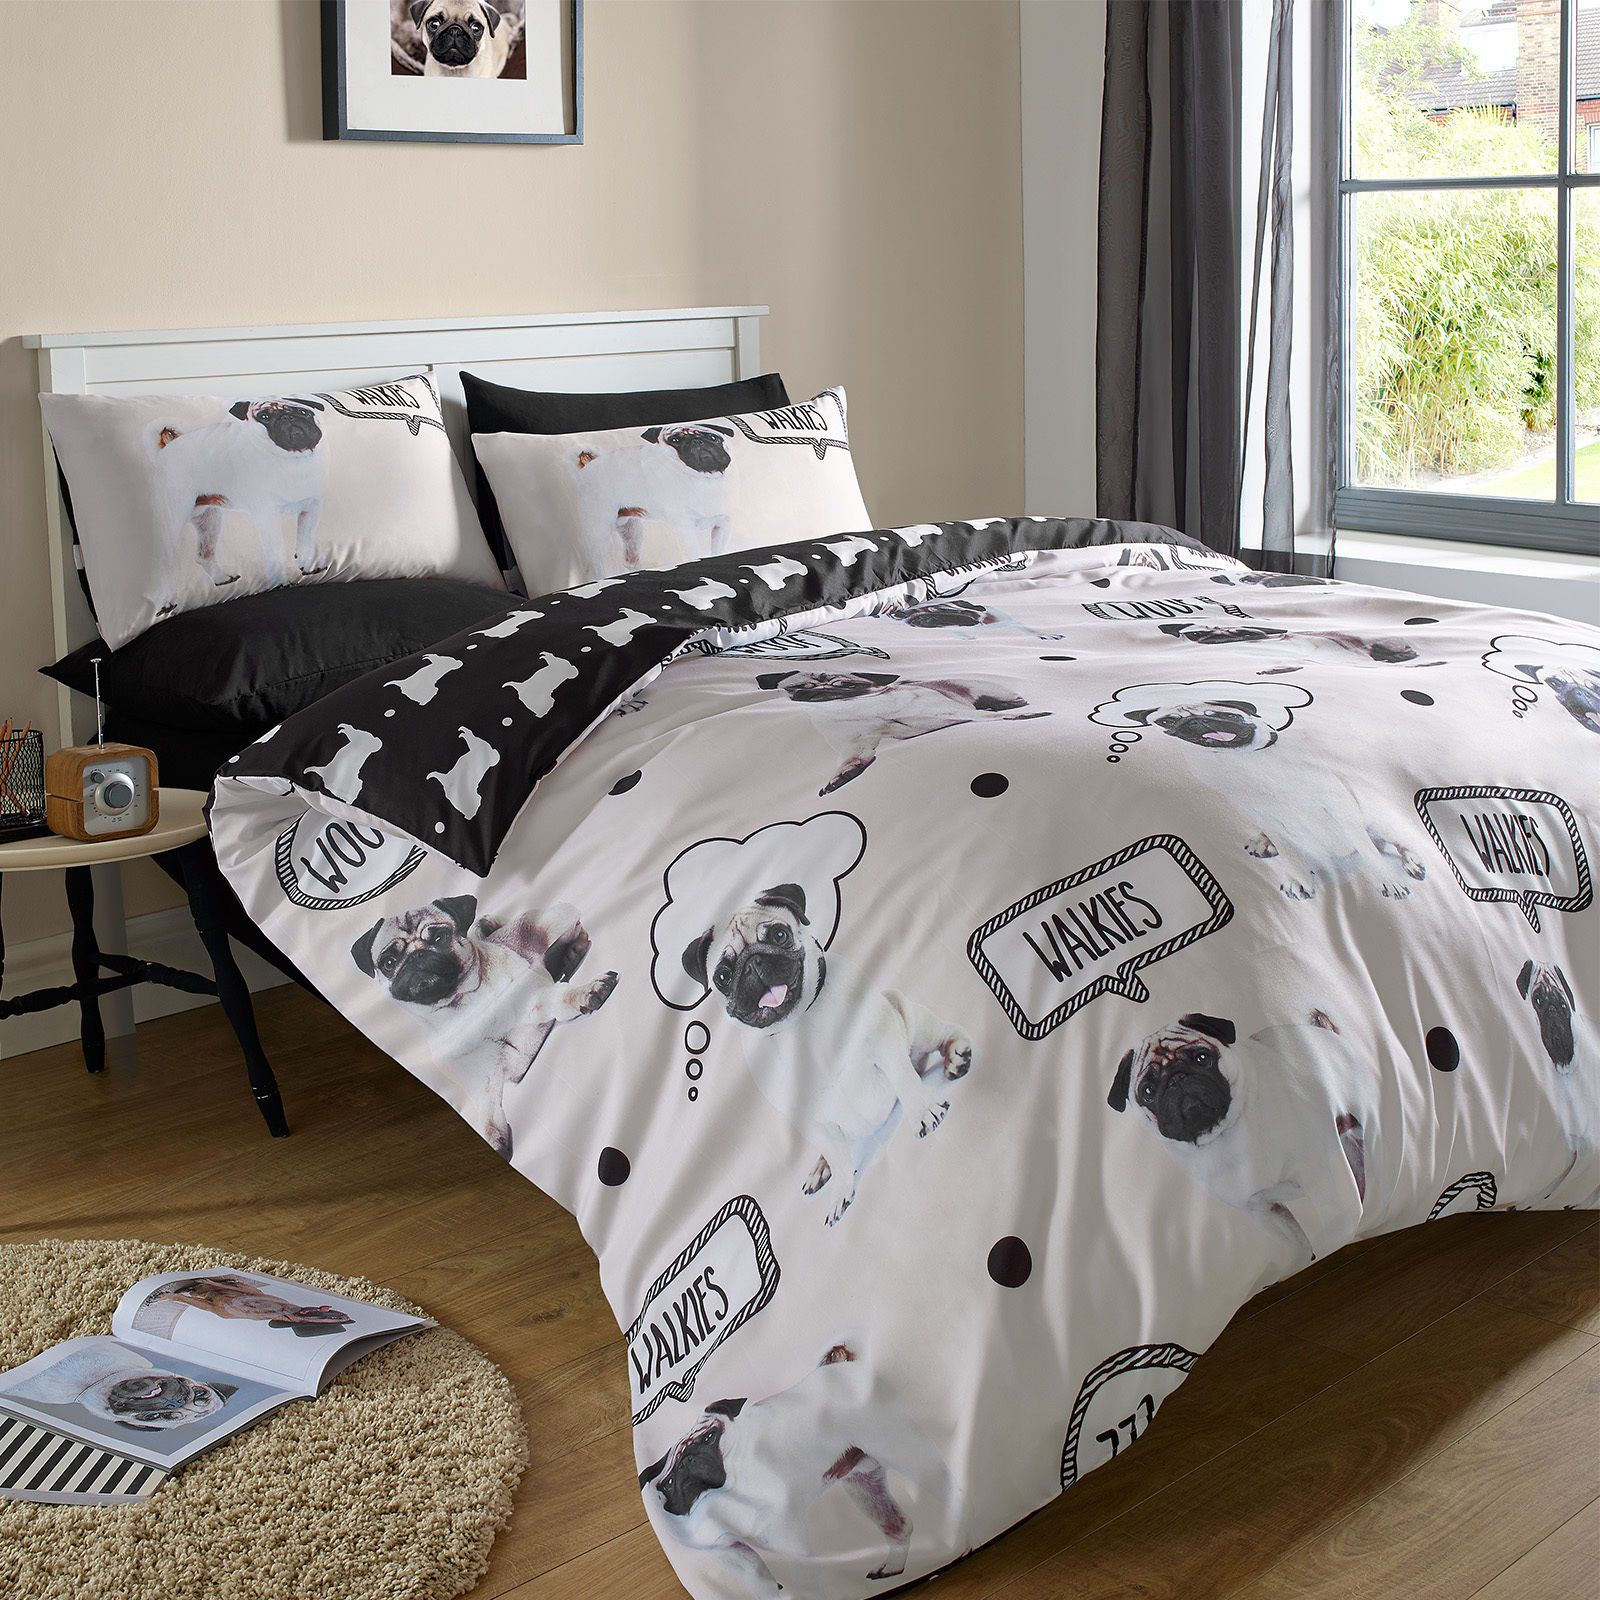 Woof Pug Dog Childrens Bedding Duvet Cover Set Twin Full Queen Cream